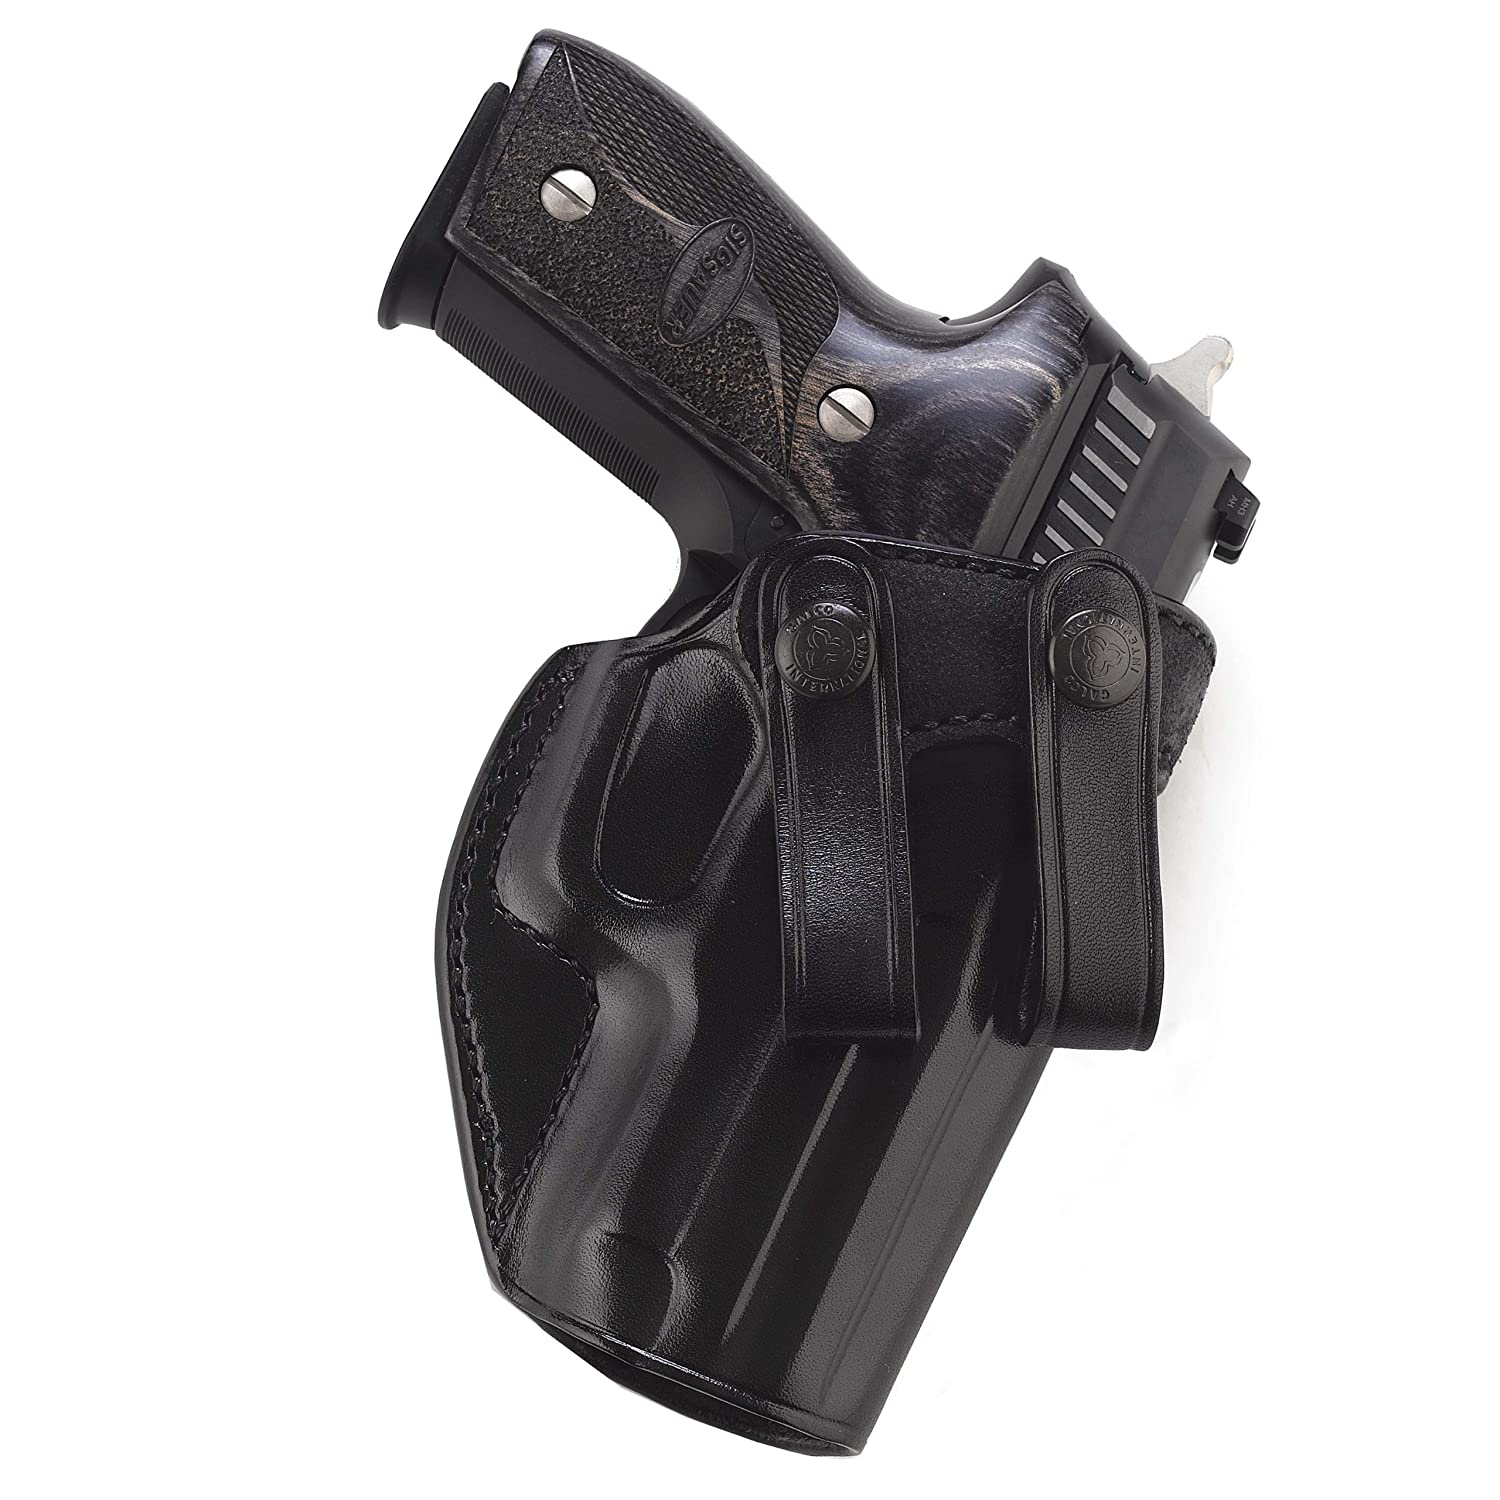 Galco International Summer Comfort Inside Pant Holster for 1911, 5-Inch Colt, Kimber, Para, Springfield (Black, Right-Hand) SUM212B